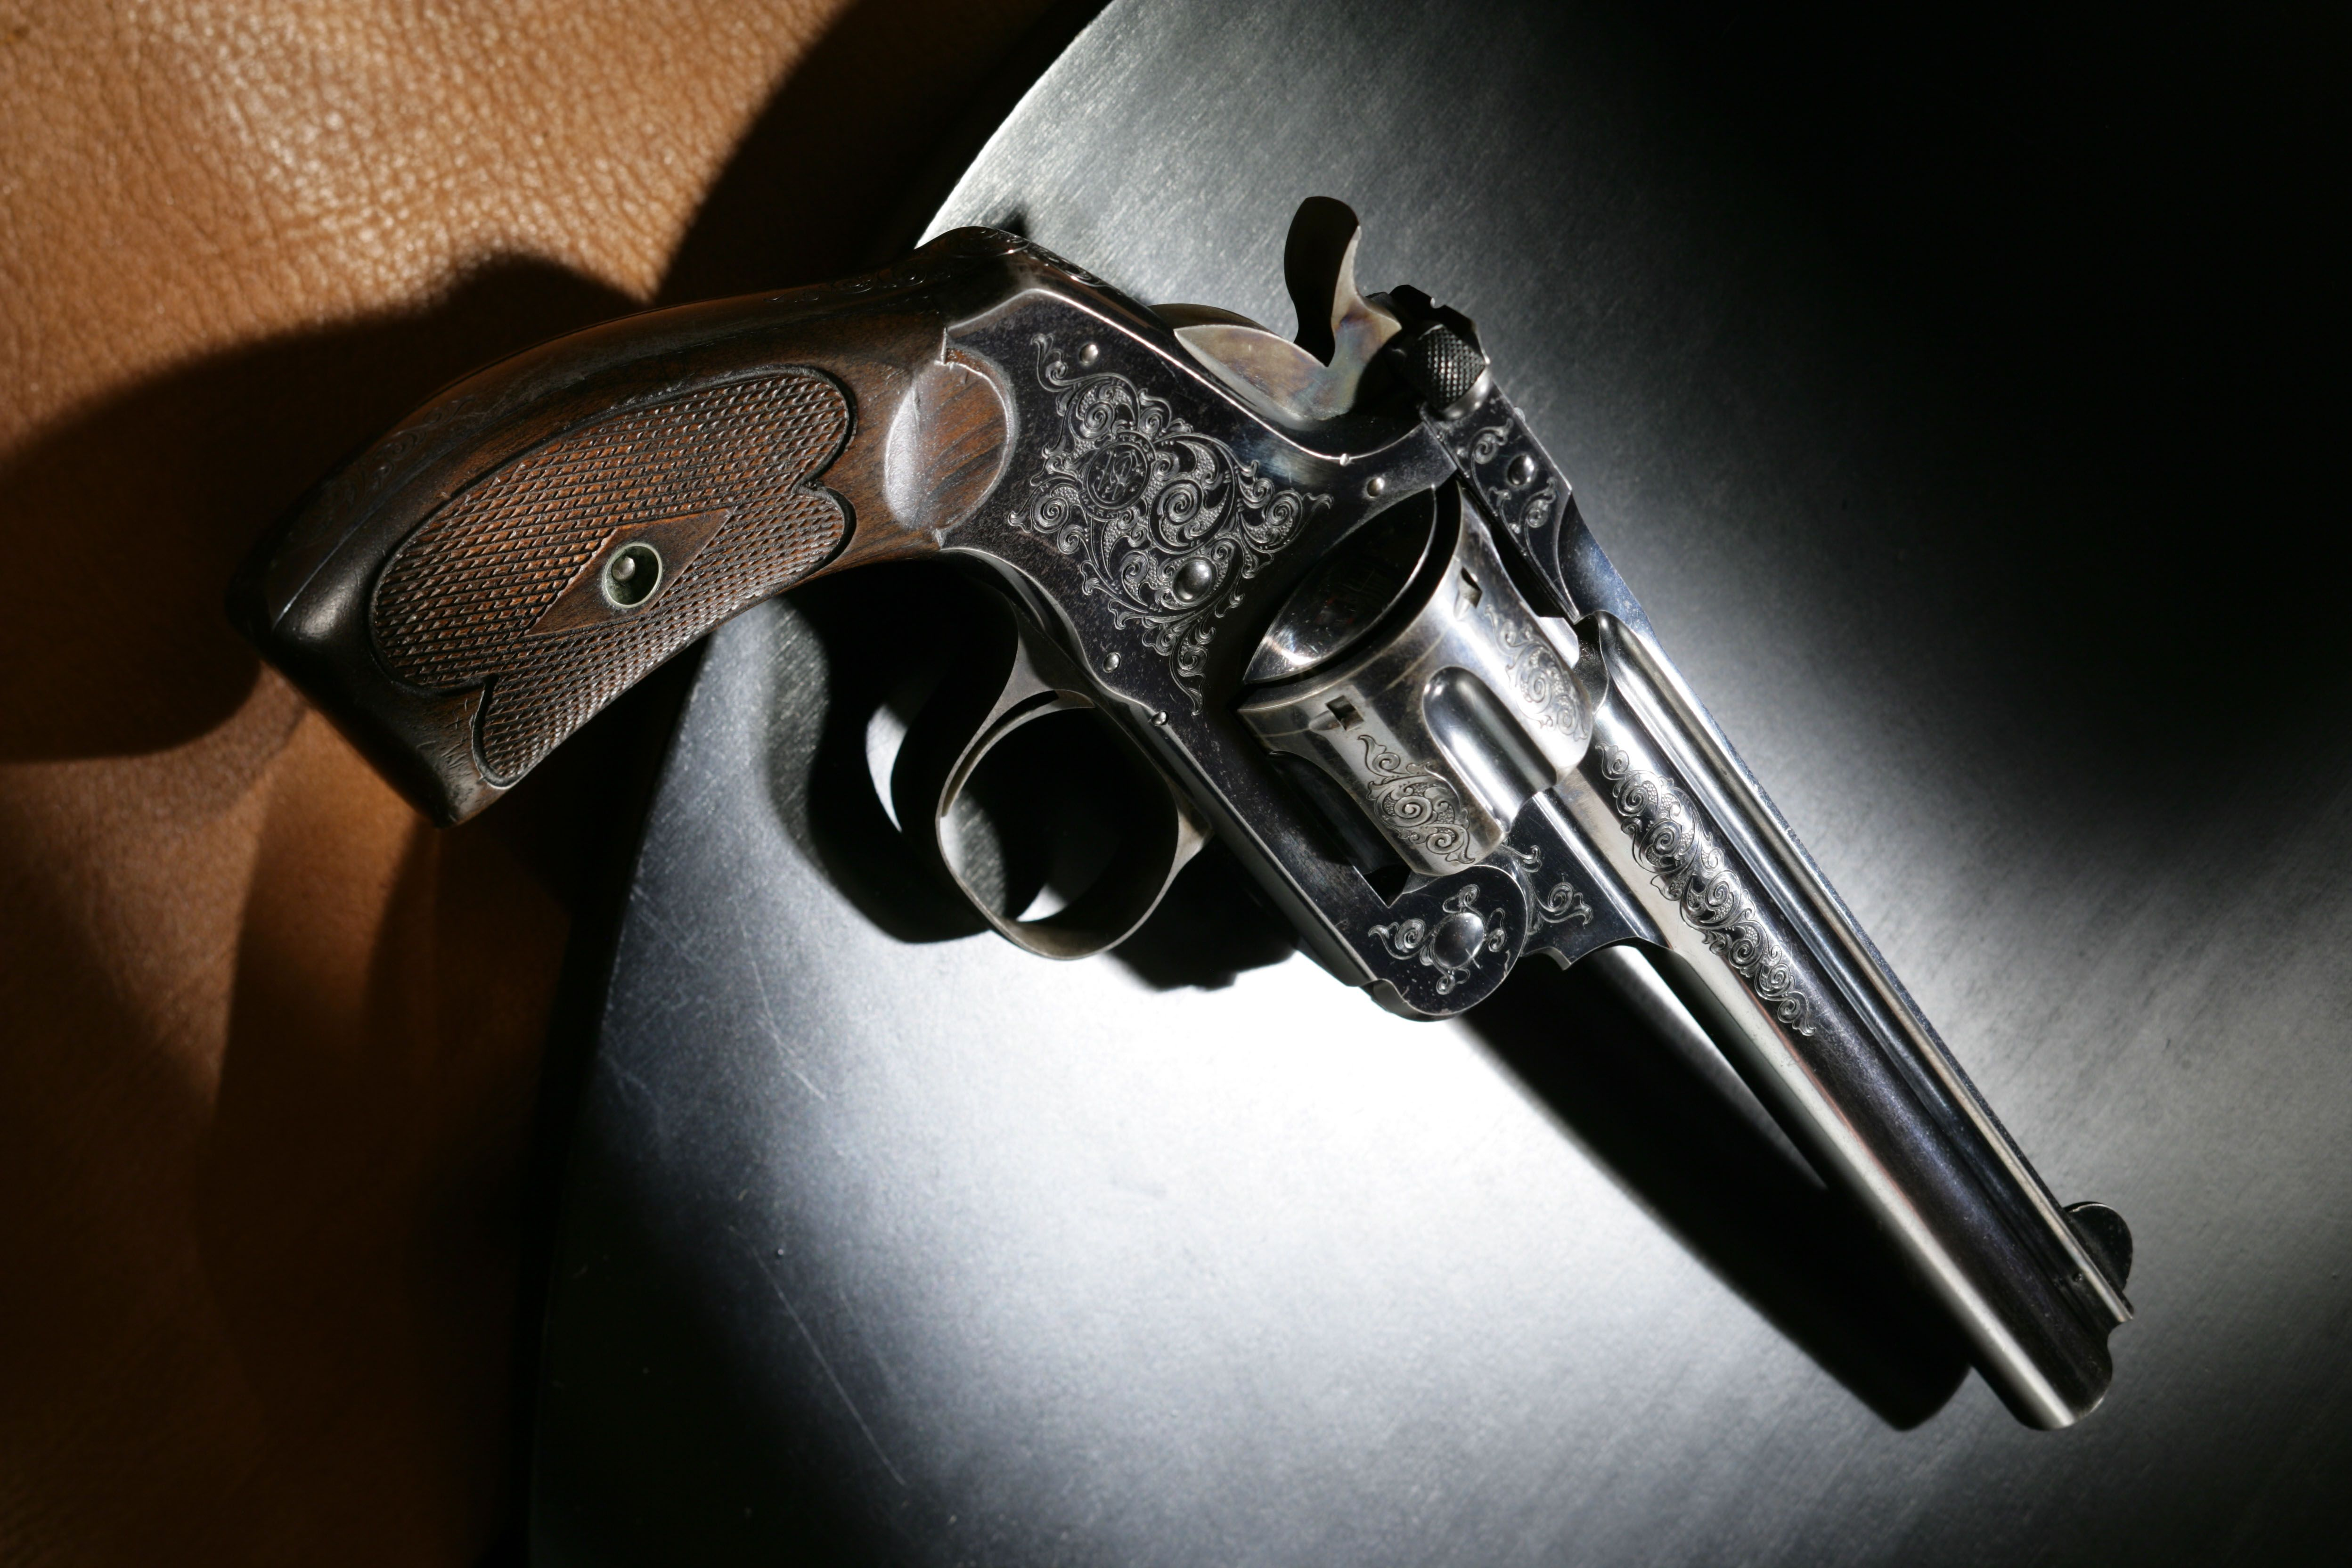 Teddy roosevelt guns to be displayed at nra national - Find This Pin And More On Firearms Us President Theodore Roosevelt S